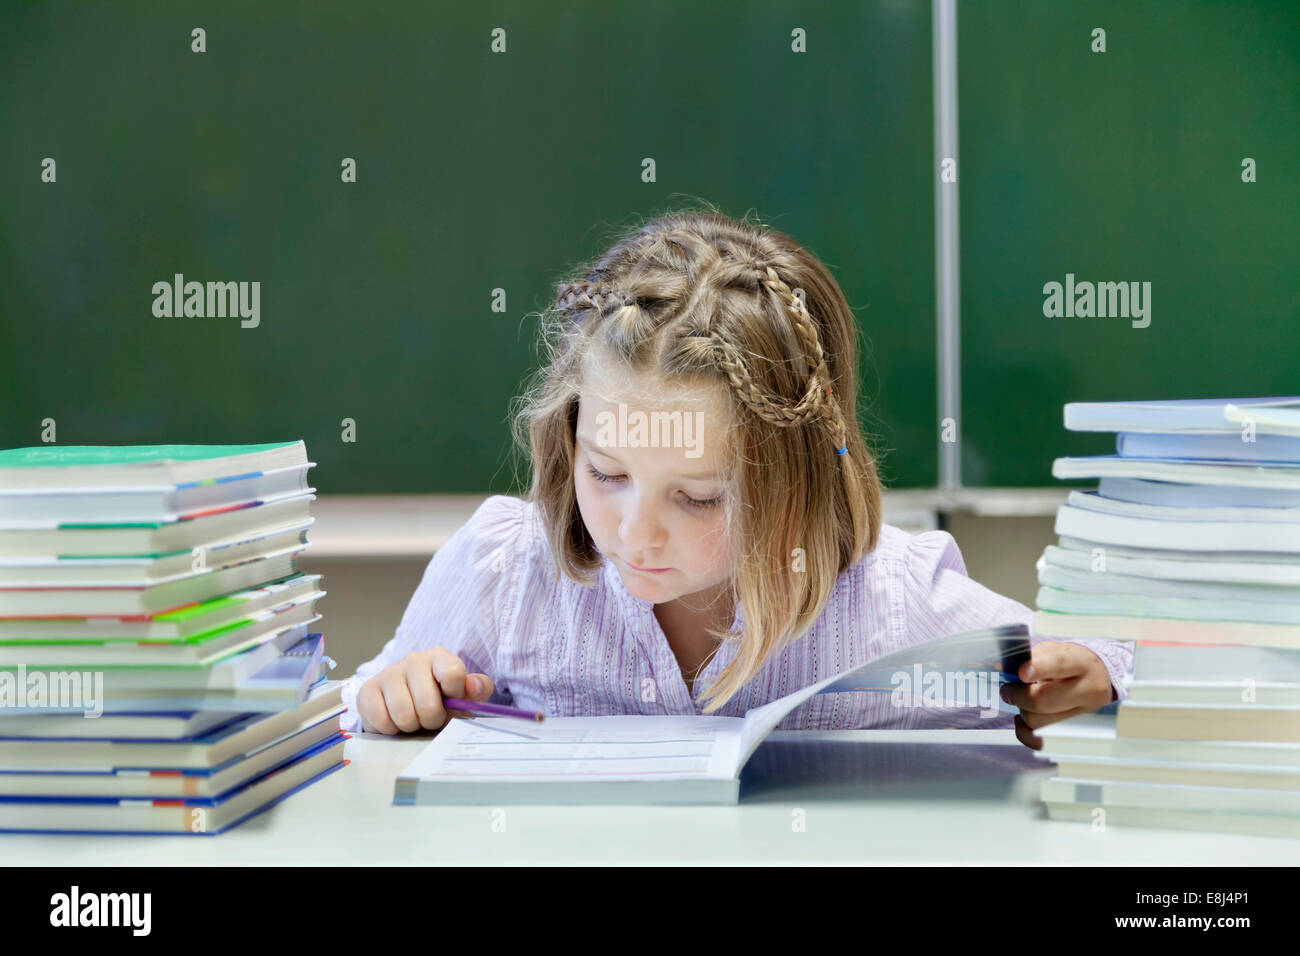 Schoolgirl, 7 years, reading a book whilst sitting between two stacks of books, in front of a blackboard - Stock Image